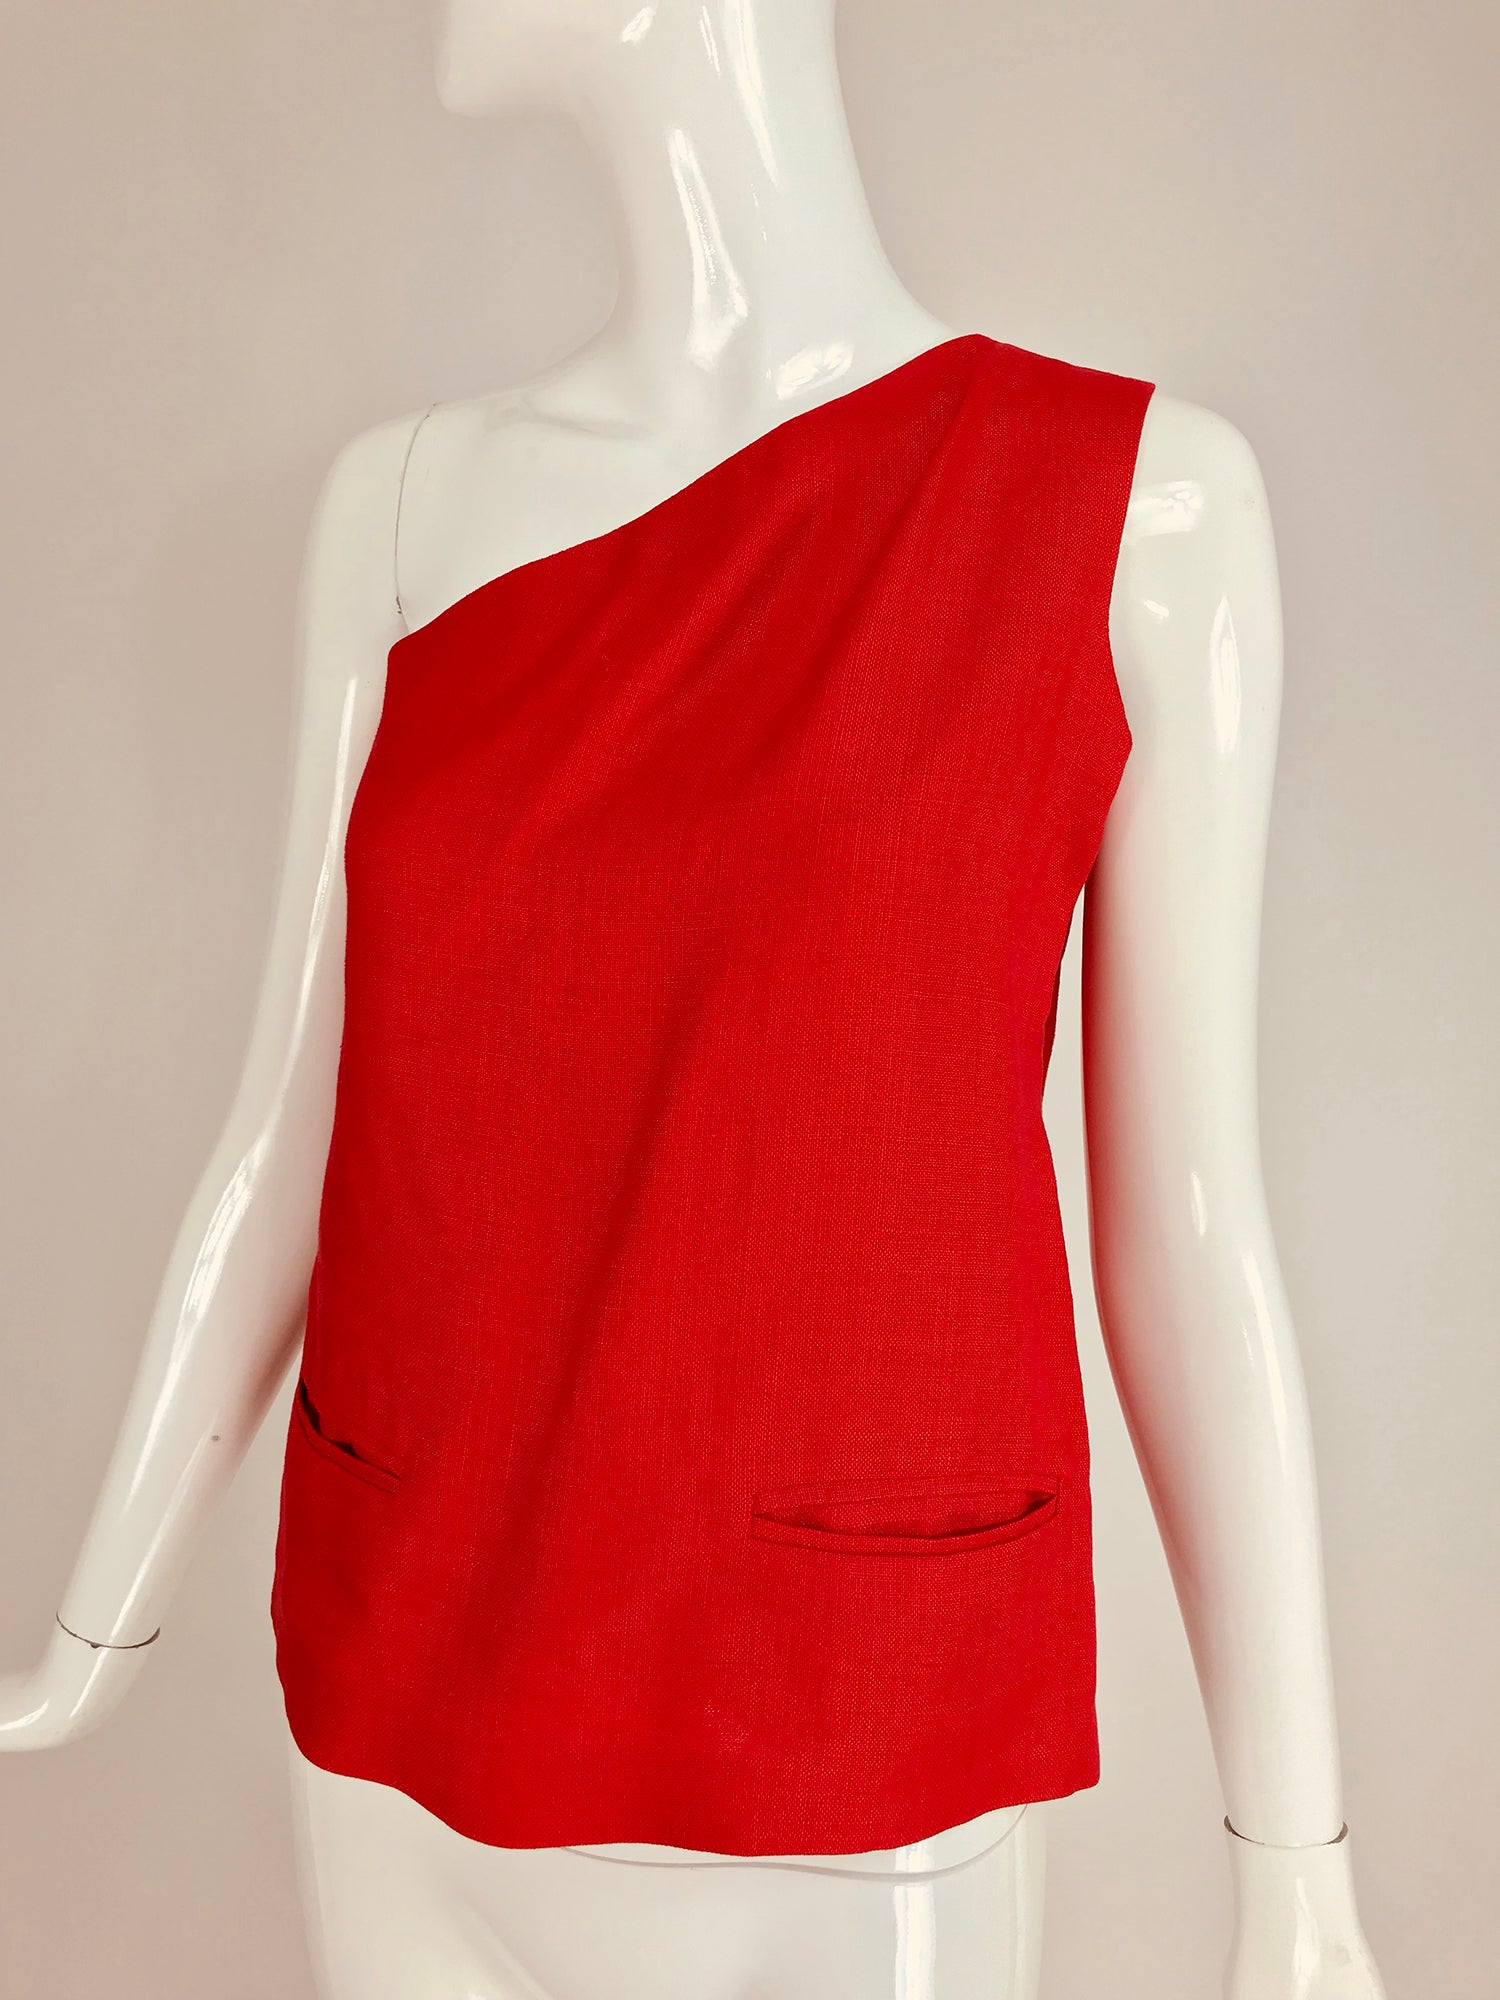 d3c55dad6fa Bill Blass red linen one shoulder top 1970s For Sale at 1stdibs